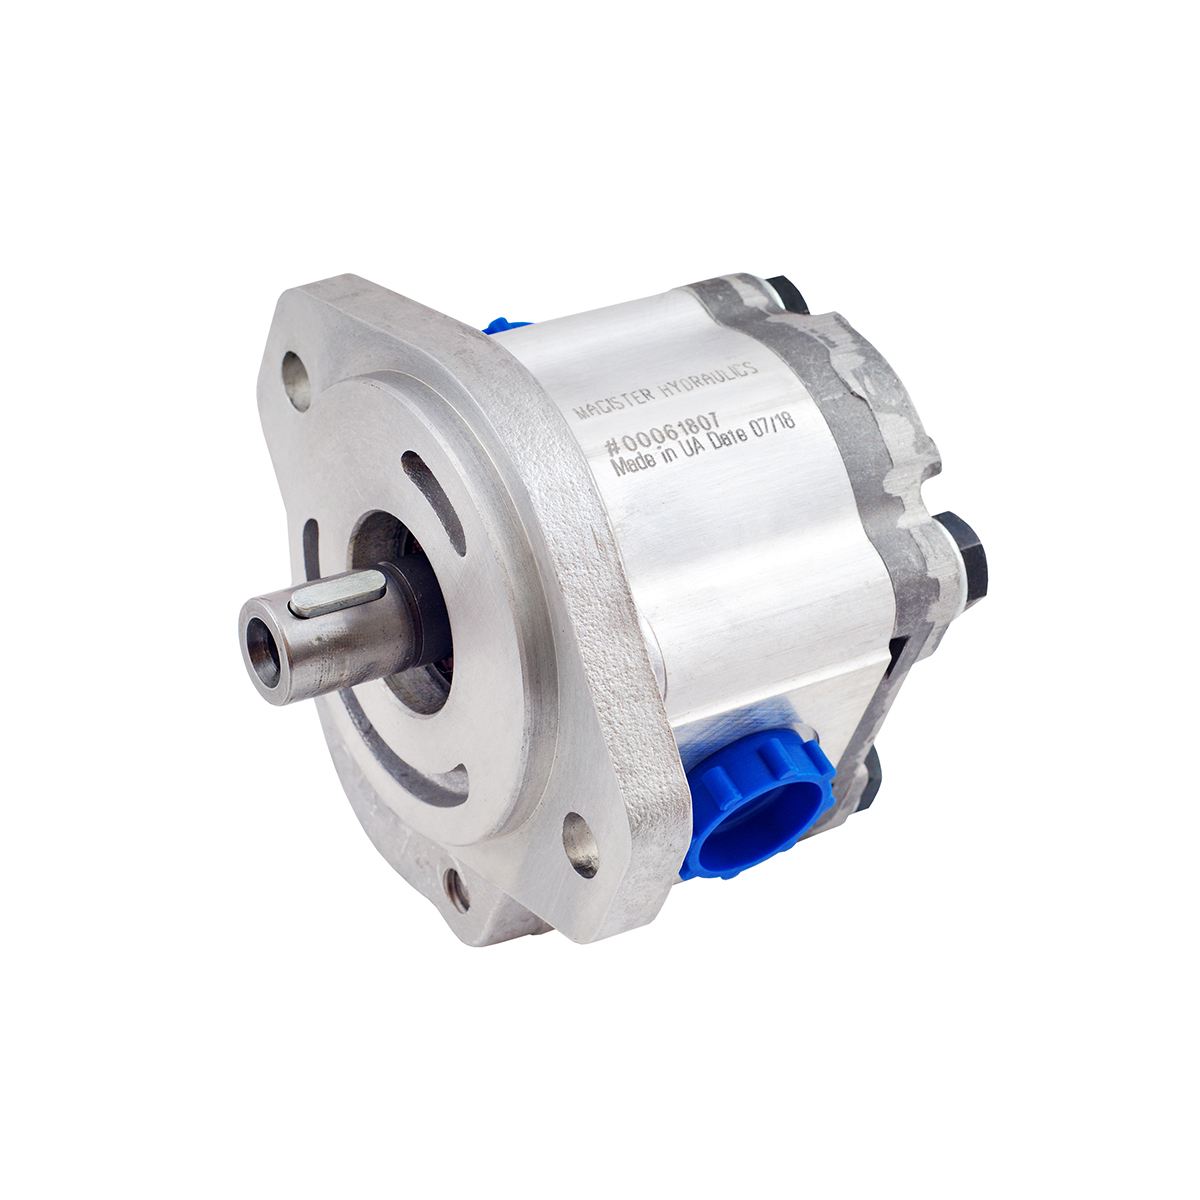 0.69 CID hydraulic gear pump, 3/4 keyed shaft counter-clockwise gear pump | Magister Hydraulics